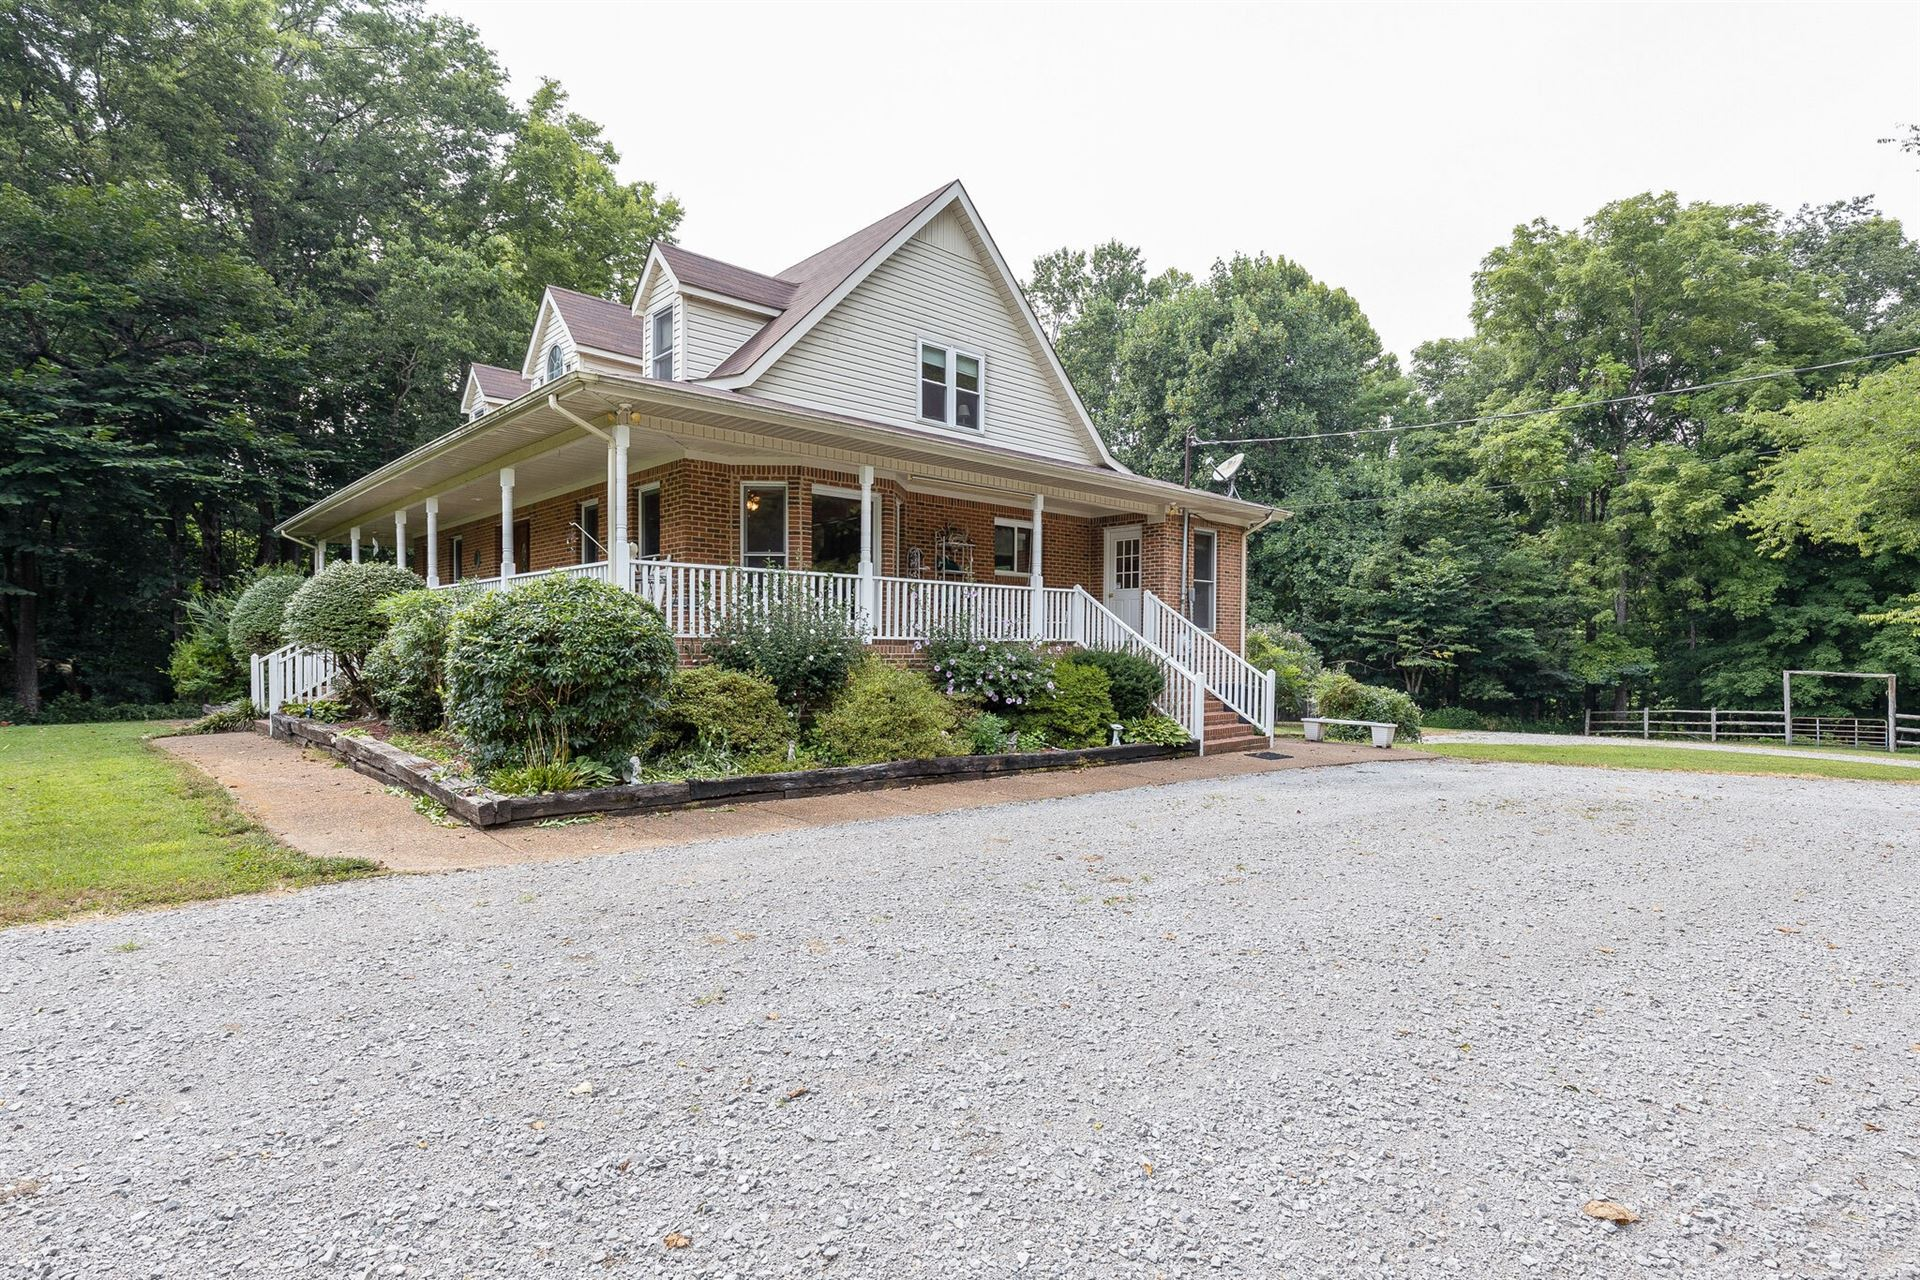 Photo of 2300 Lee Rd, Spring Hill, TN 37174 (MLS # 2279177)